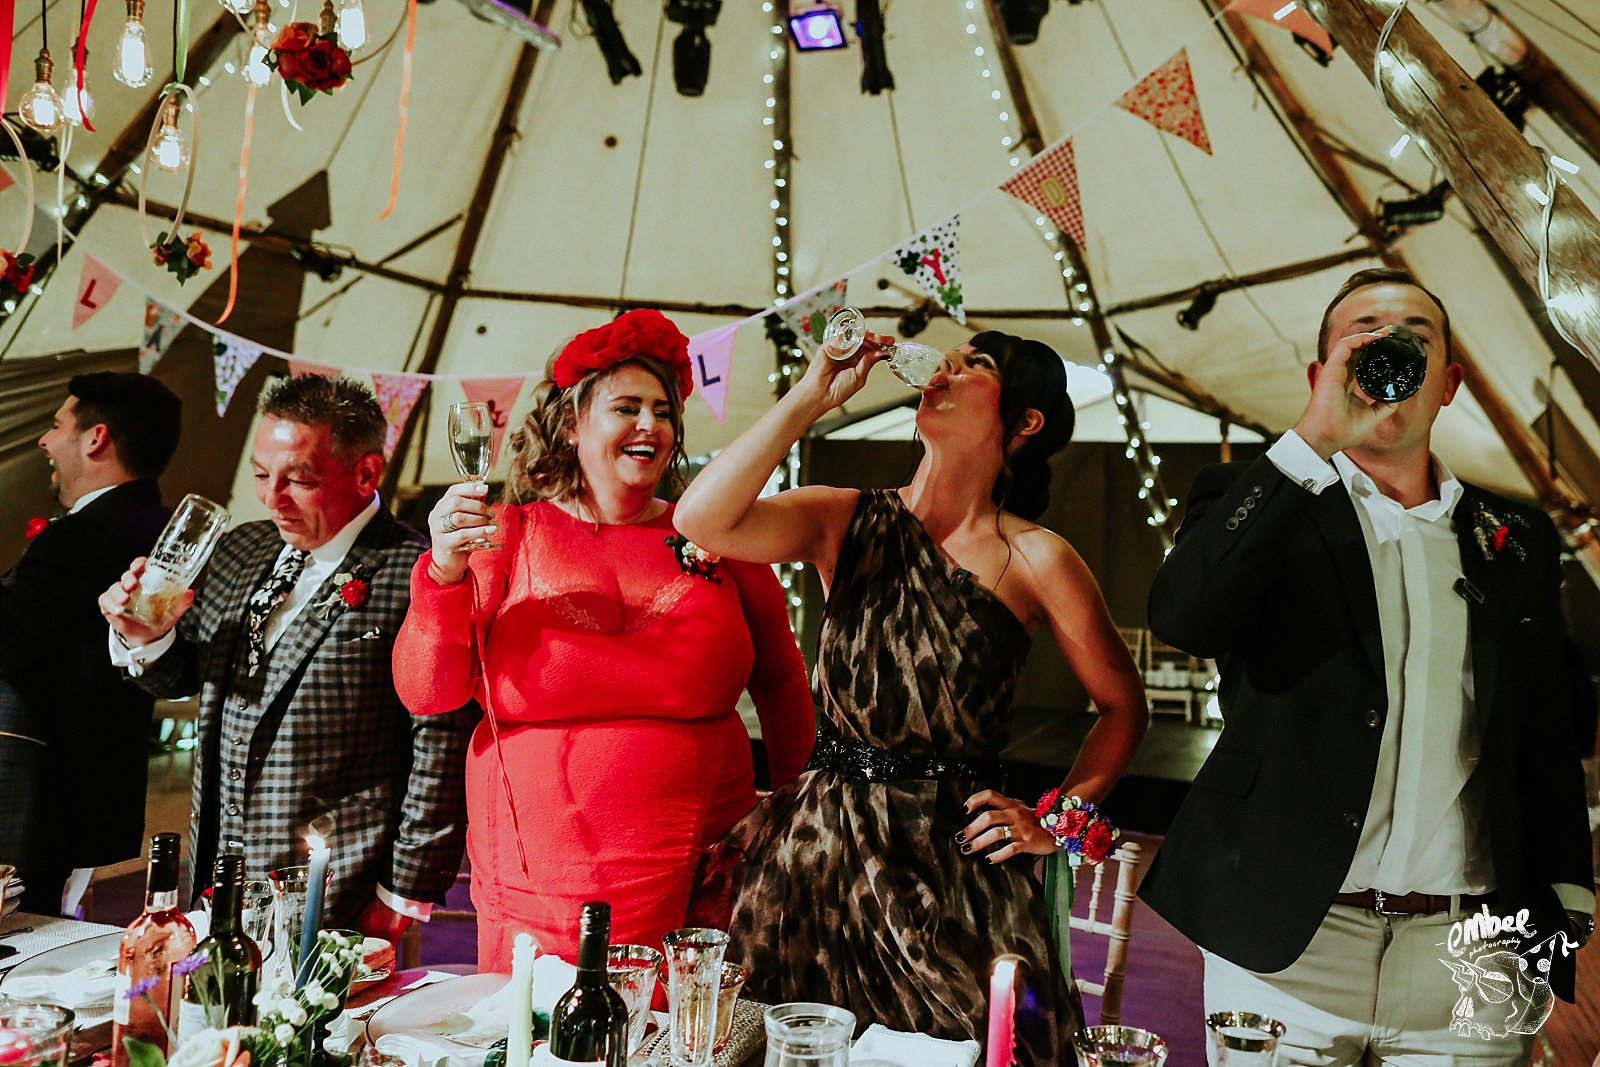 grooms sister downing champagne